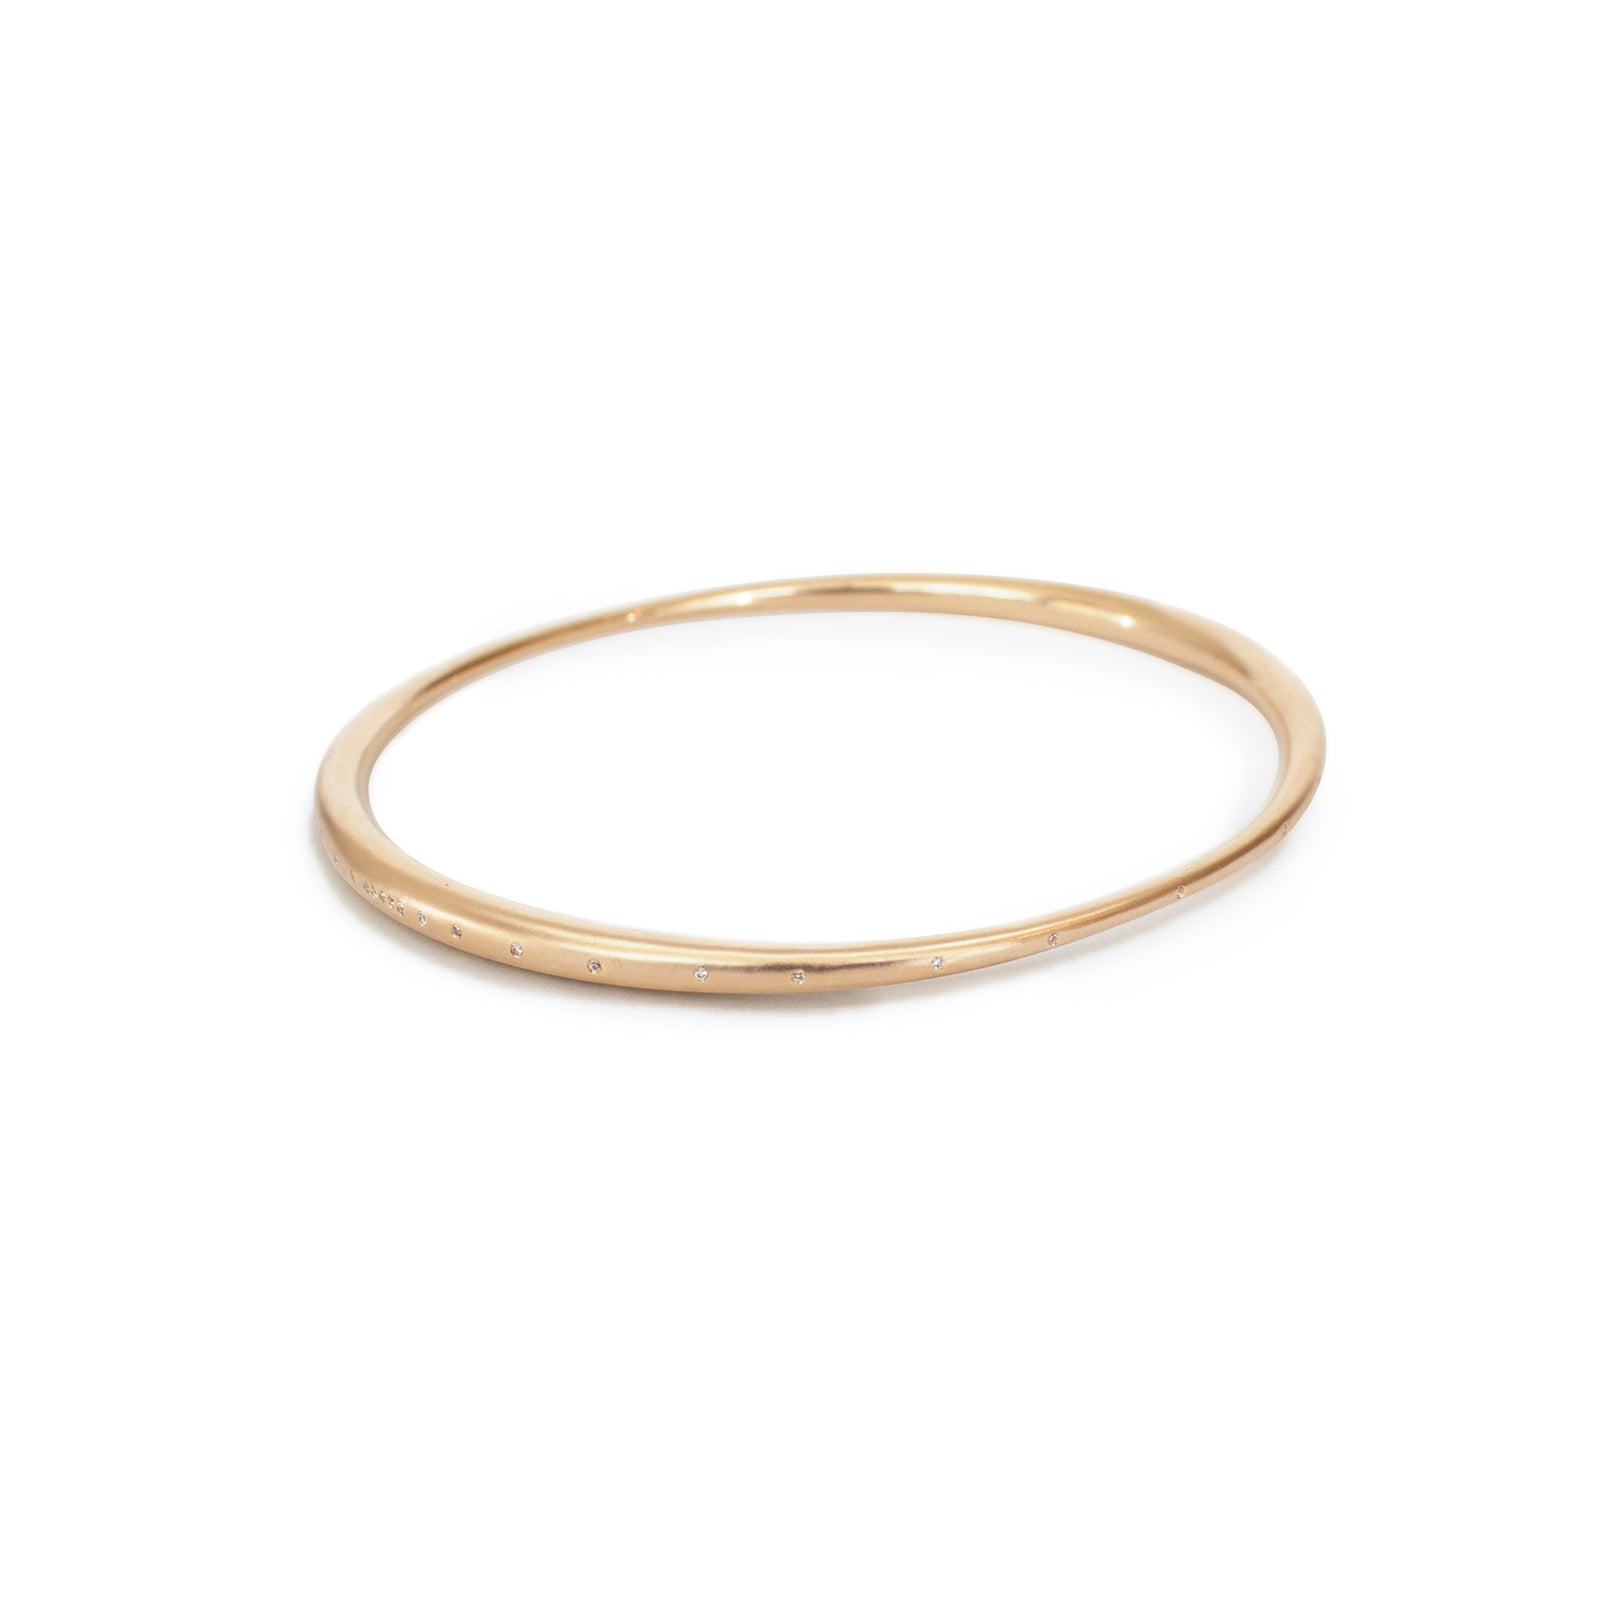 14k yellow gold w/ white diamonds arpent bangle